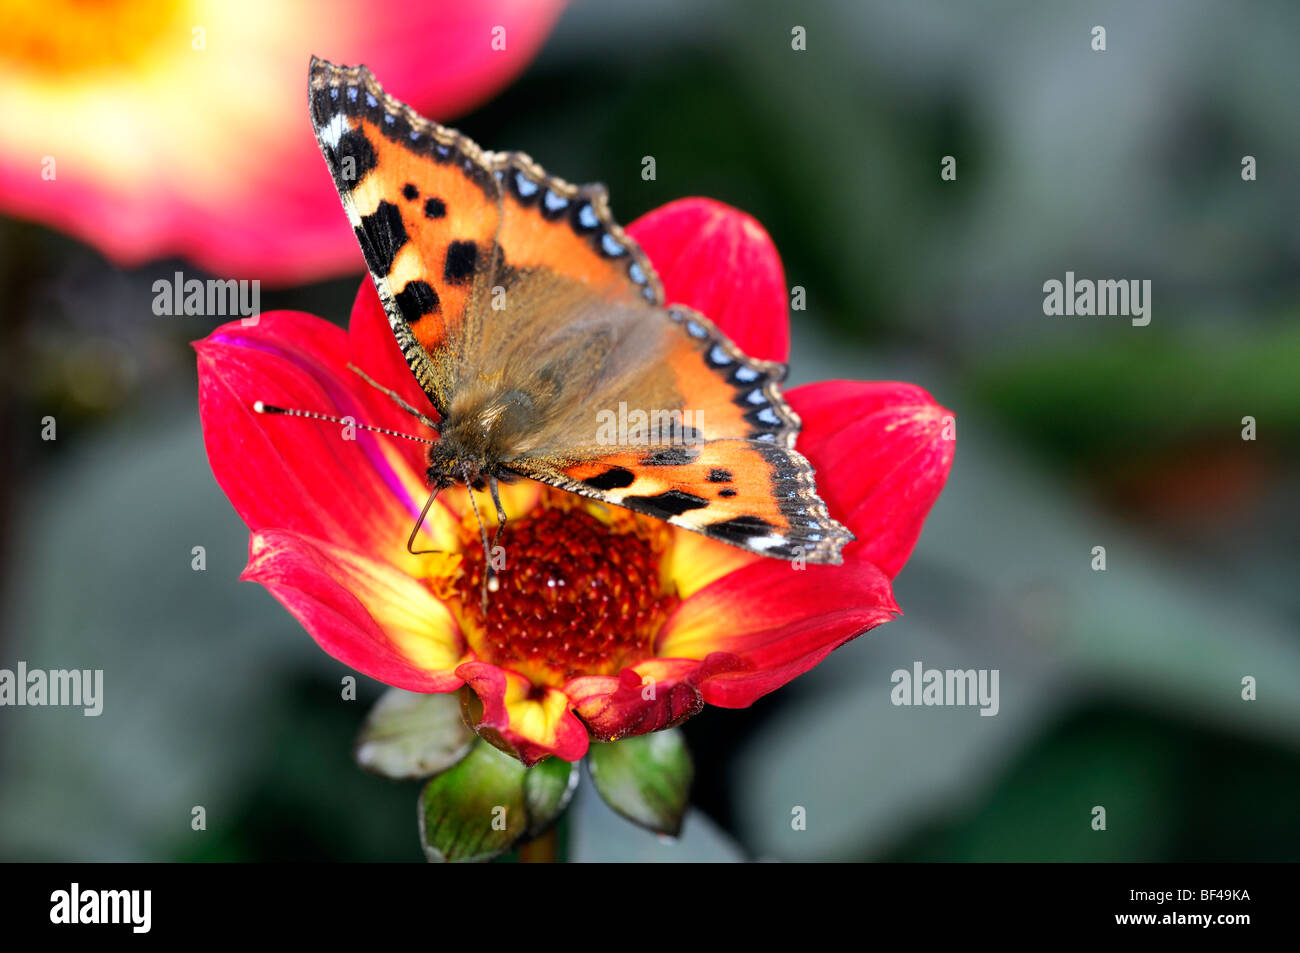 Small Tortoiseshell butterfly Aglais urticae feeding feed drink drinking nectar from Dahlia  flower bloom blossom - Stock Image